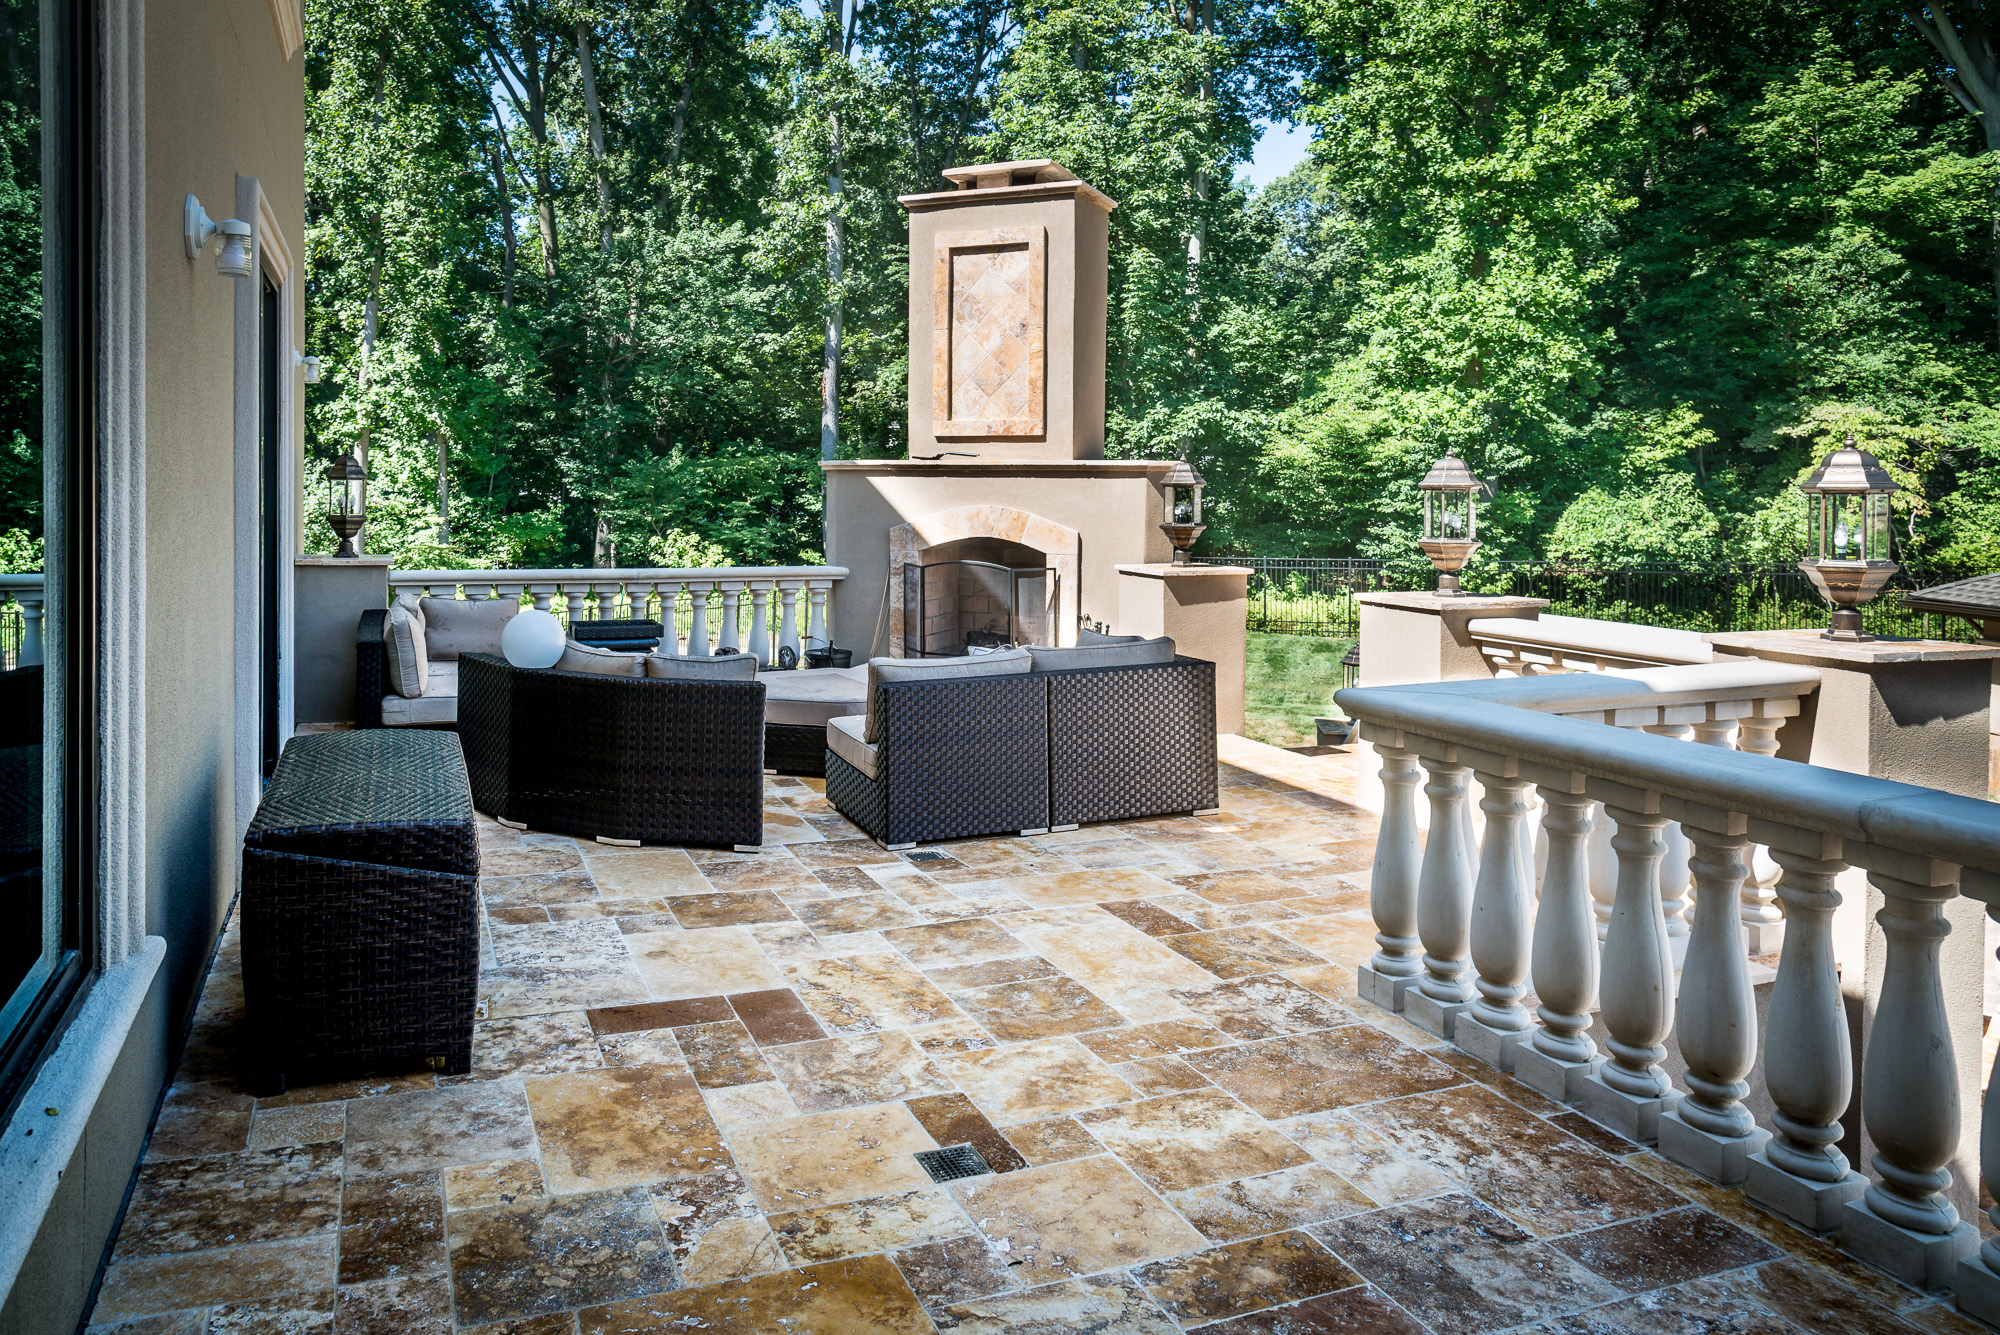 Nj traditional patio new york by cipriano landscape design - Pool Designs Nj Inground Swimming Pool Designs Award Winning Inground Swimming Pool Design Ideas Nj Cipriano